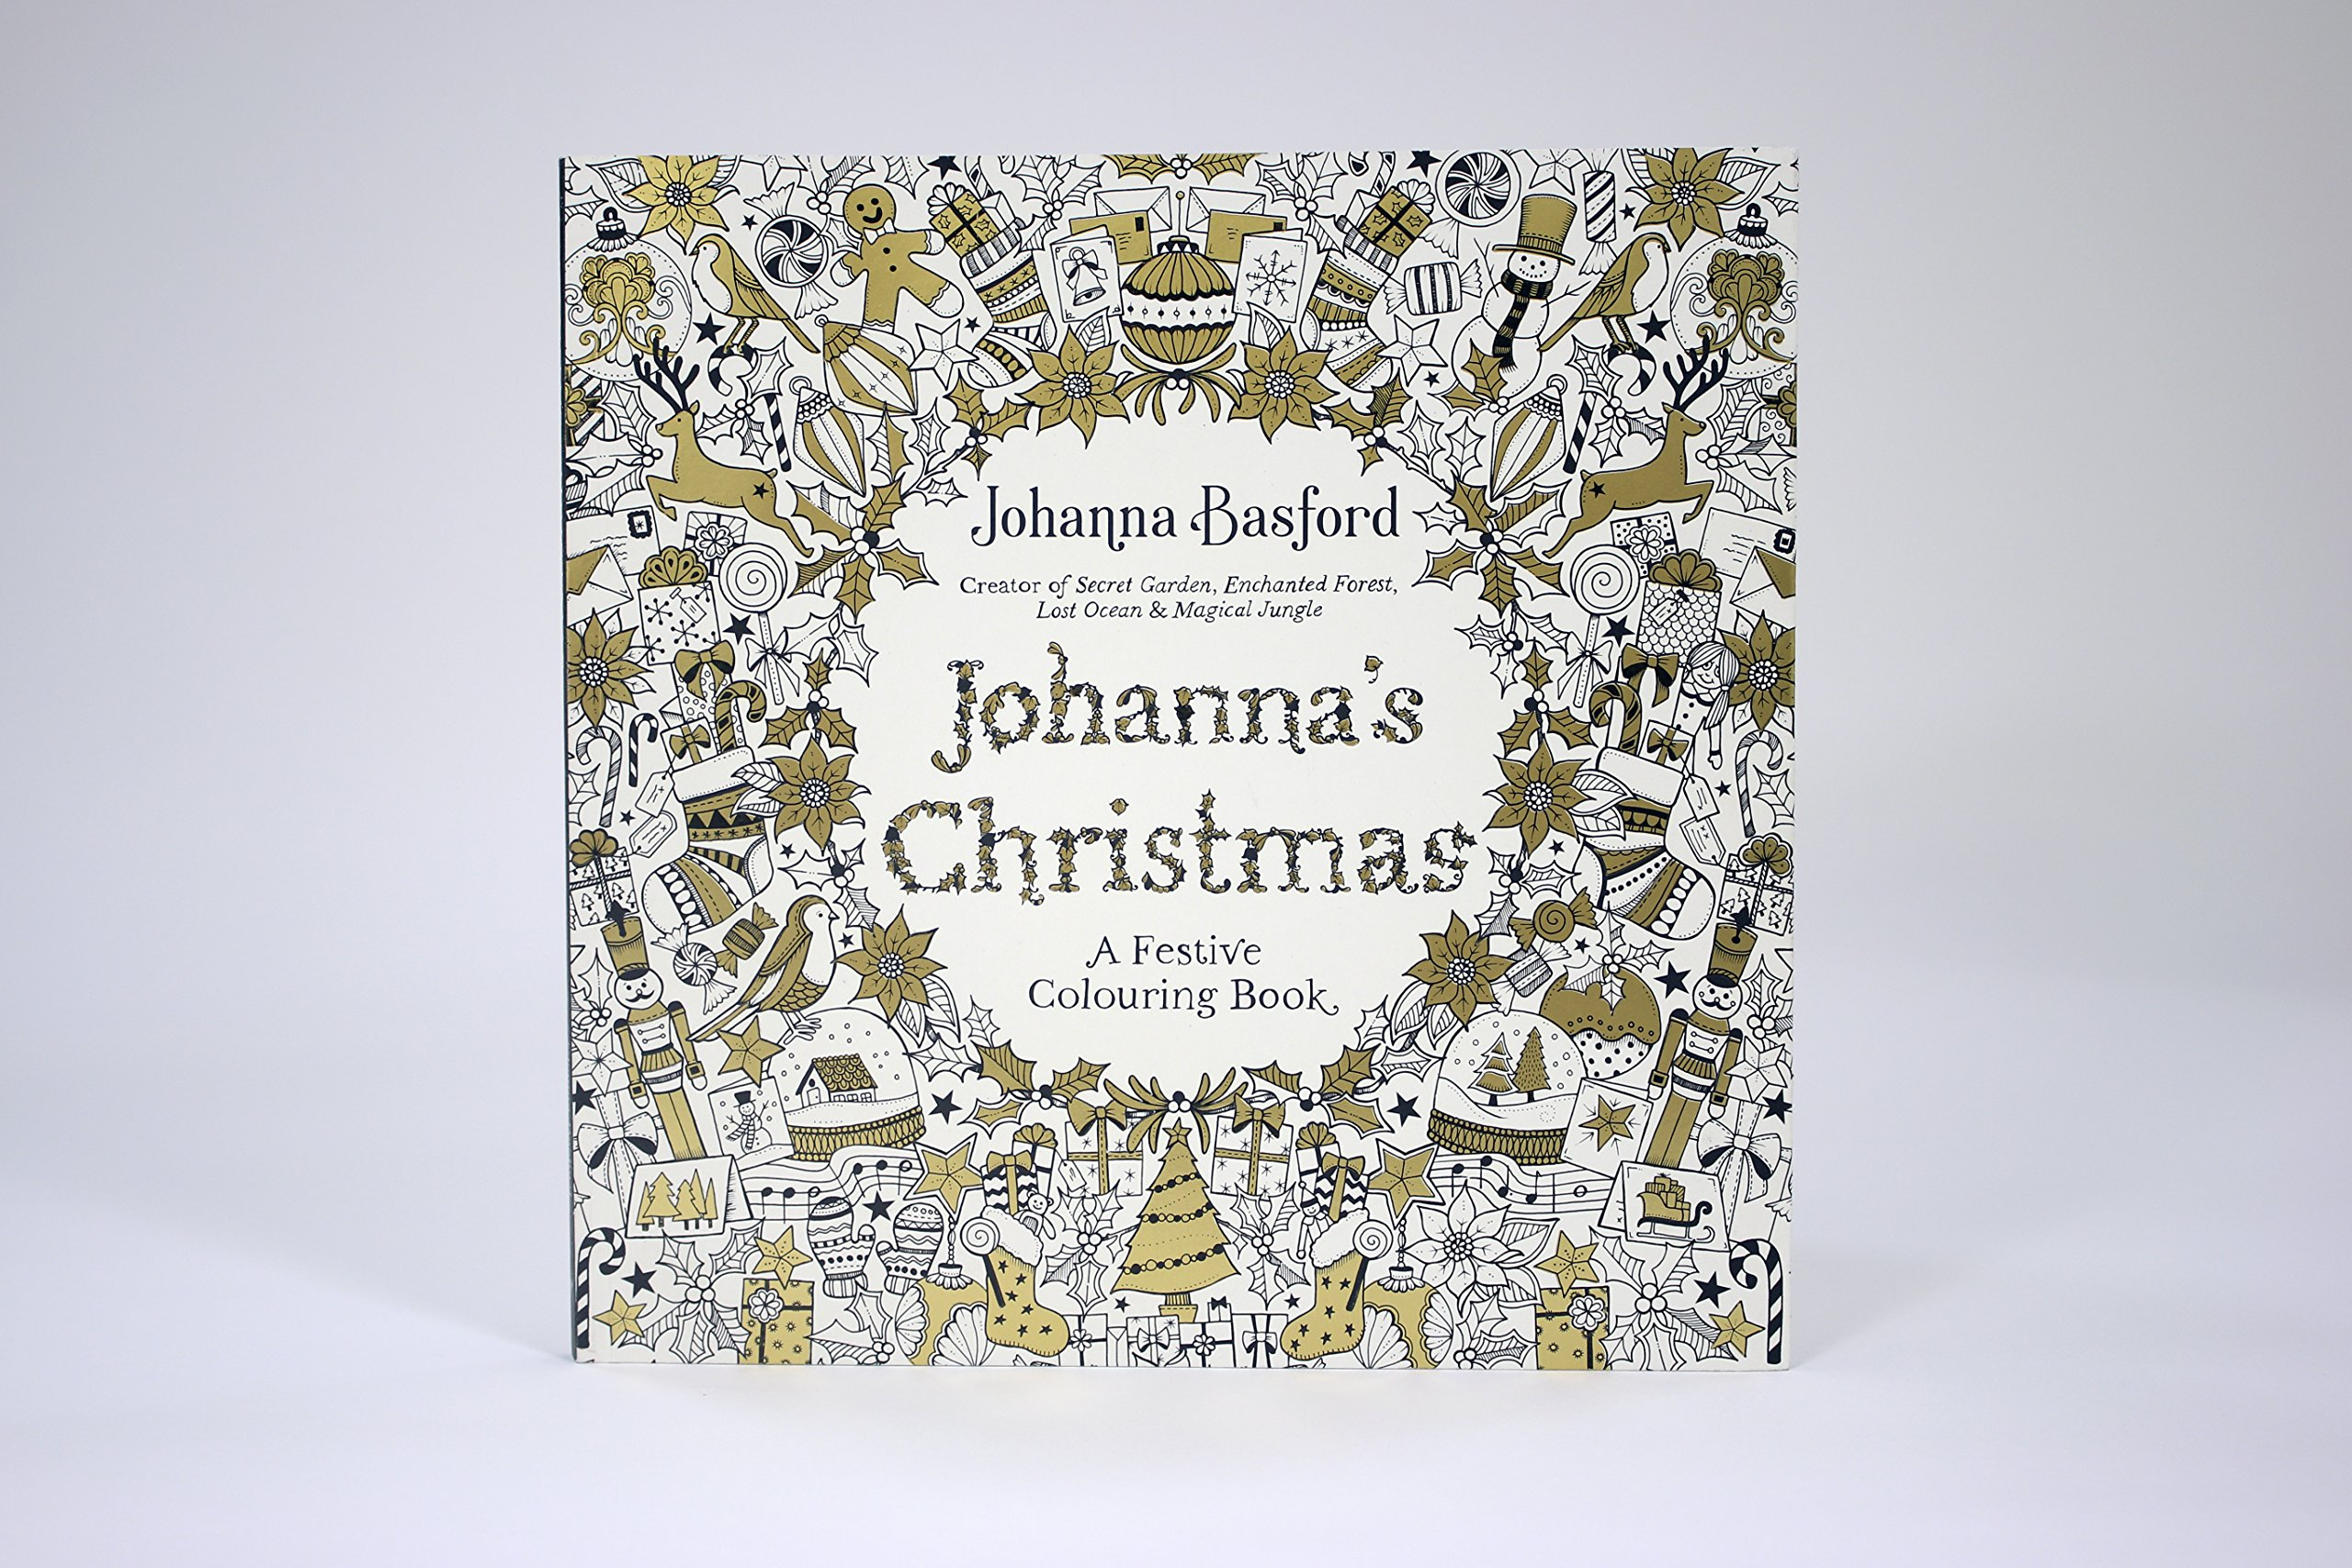 Johannas Christmas A Festive Colouring Book Books Amazonco Uk Johanna Basford 9780753557563